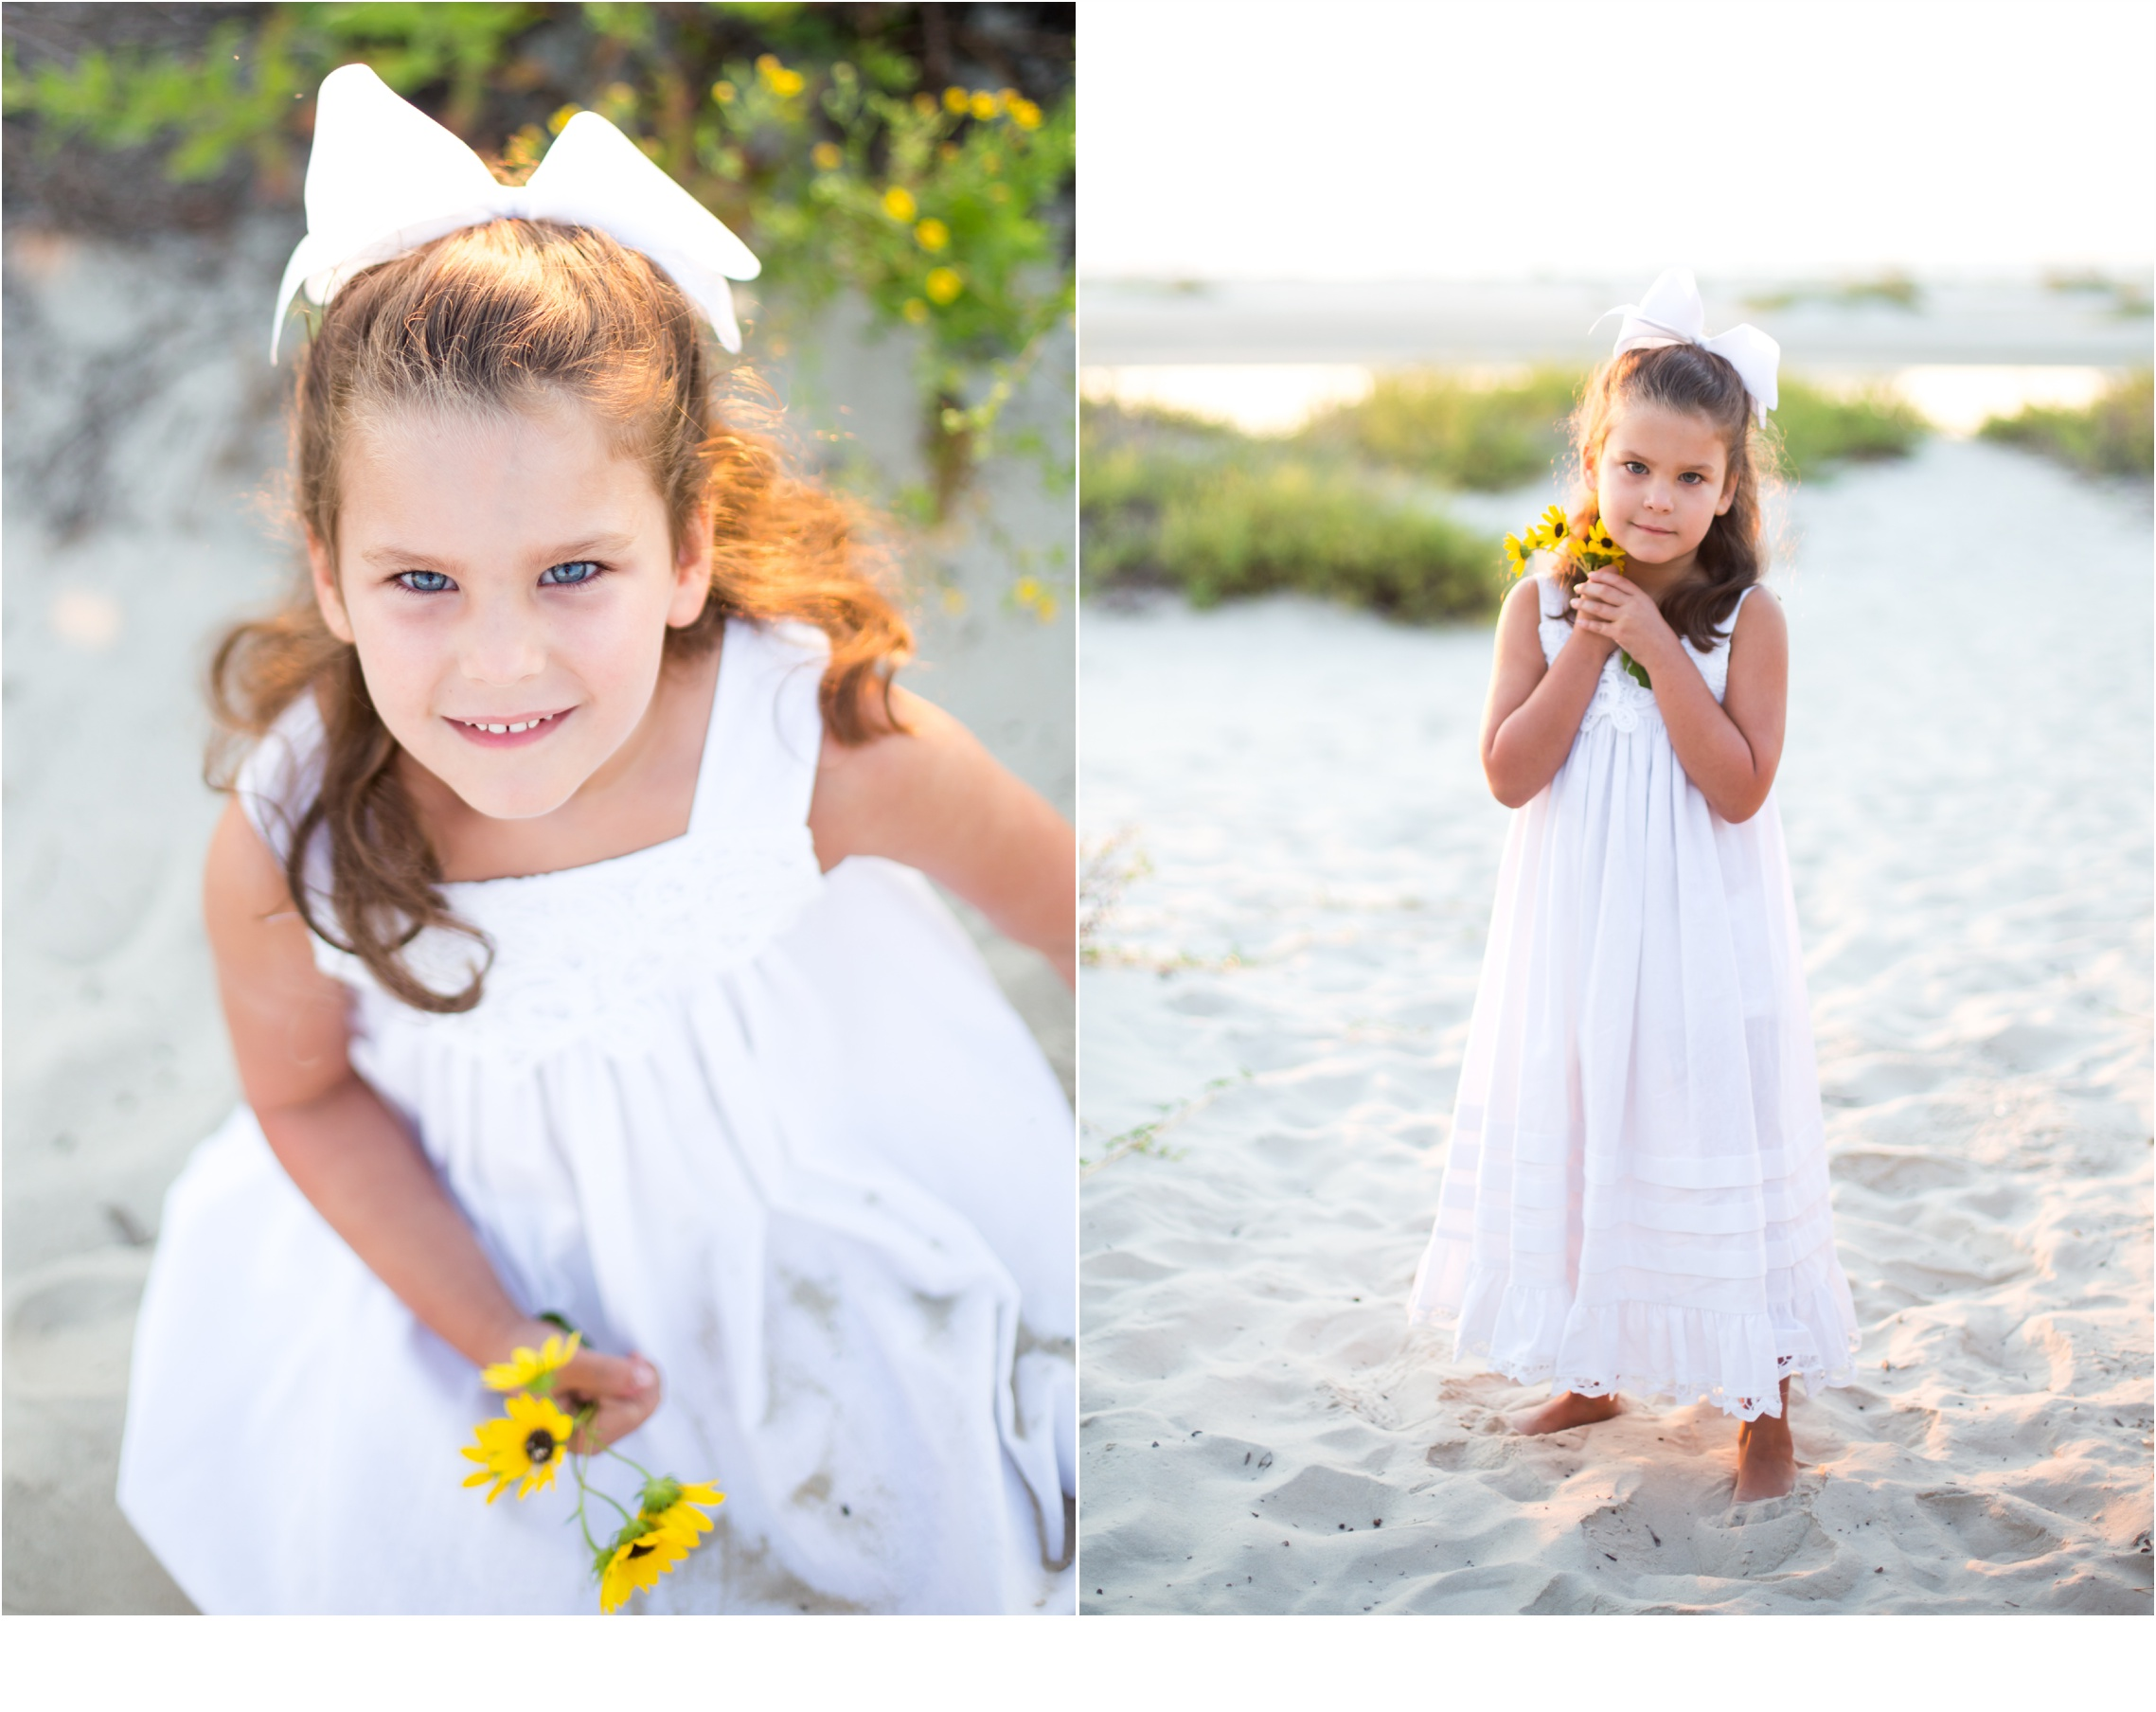 Rainey_Gregg_Photography_St._Simons_Island_Georgia_California_Wedding_Portrait_Photography_0170.jpg